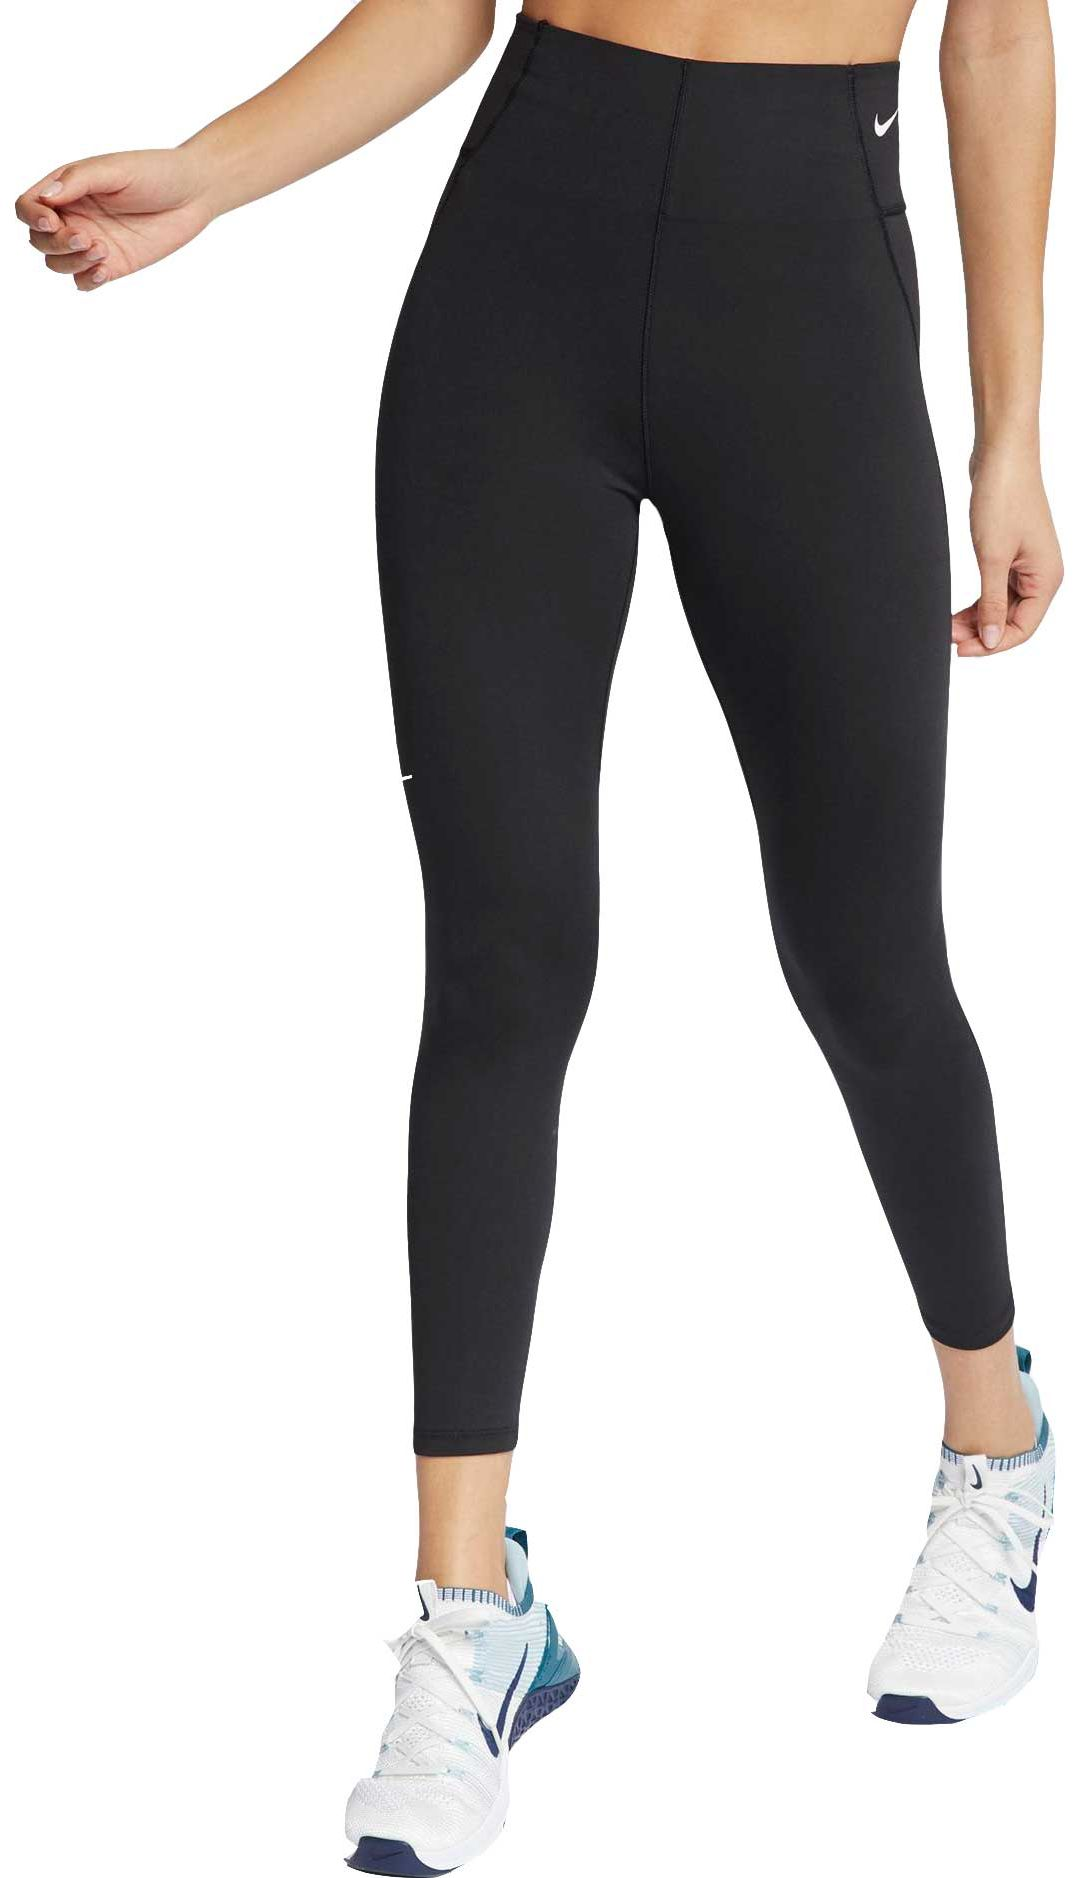 90ecb387ef7be Nike One Women's Sculpt Victory Cropped Legging. noImageFound. Previous